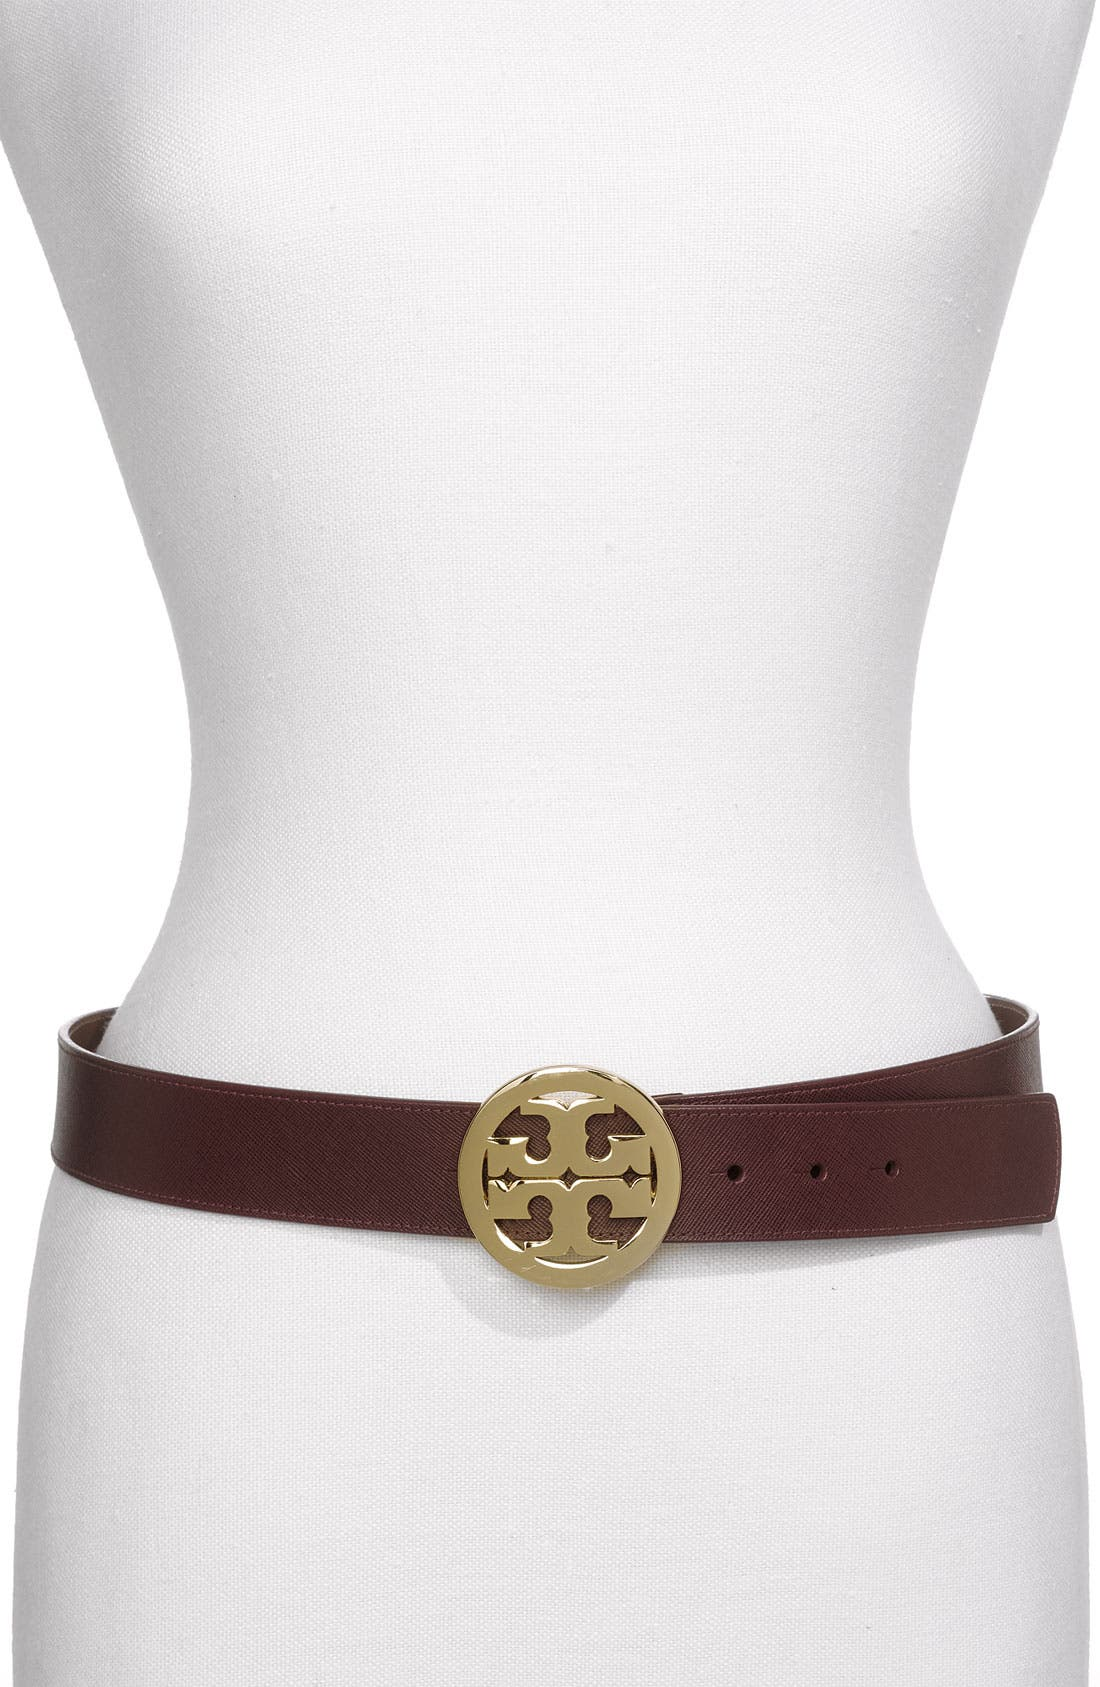 Alternate Image 1 Selected - Tory Burch Logo Belt